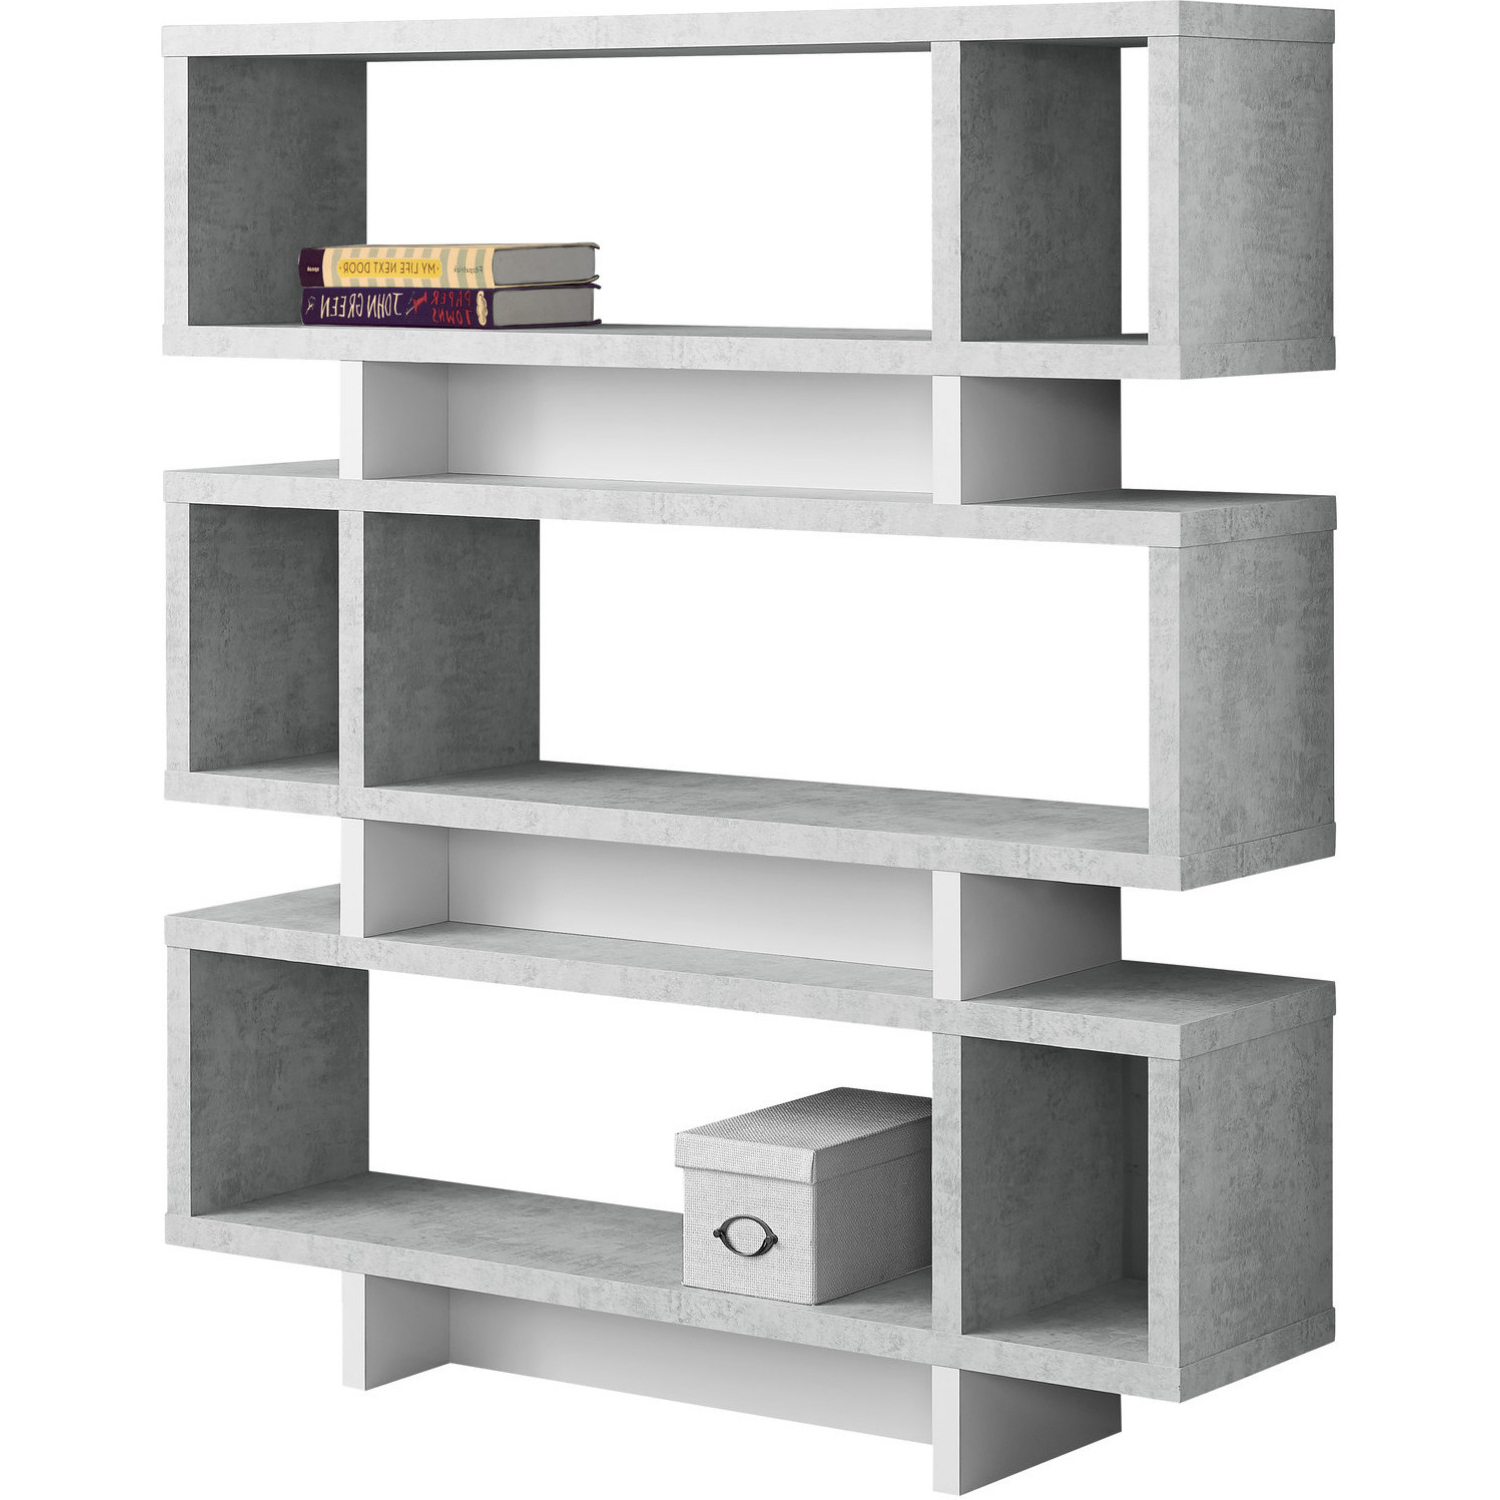 "Recent Mckibben Geometric Bookcases Intended For Monrach 55 "" Bookcase White Cement Look Modern Style In (View 17 of 20)"